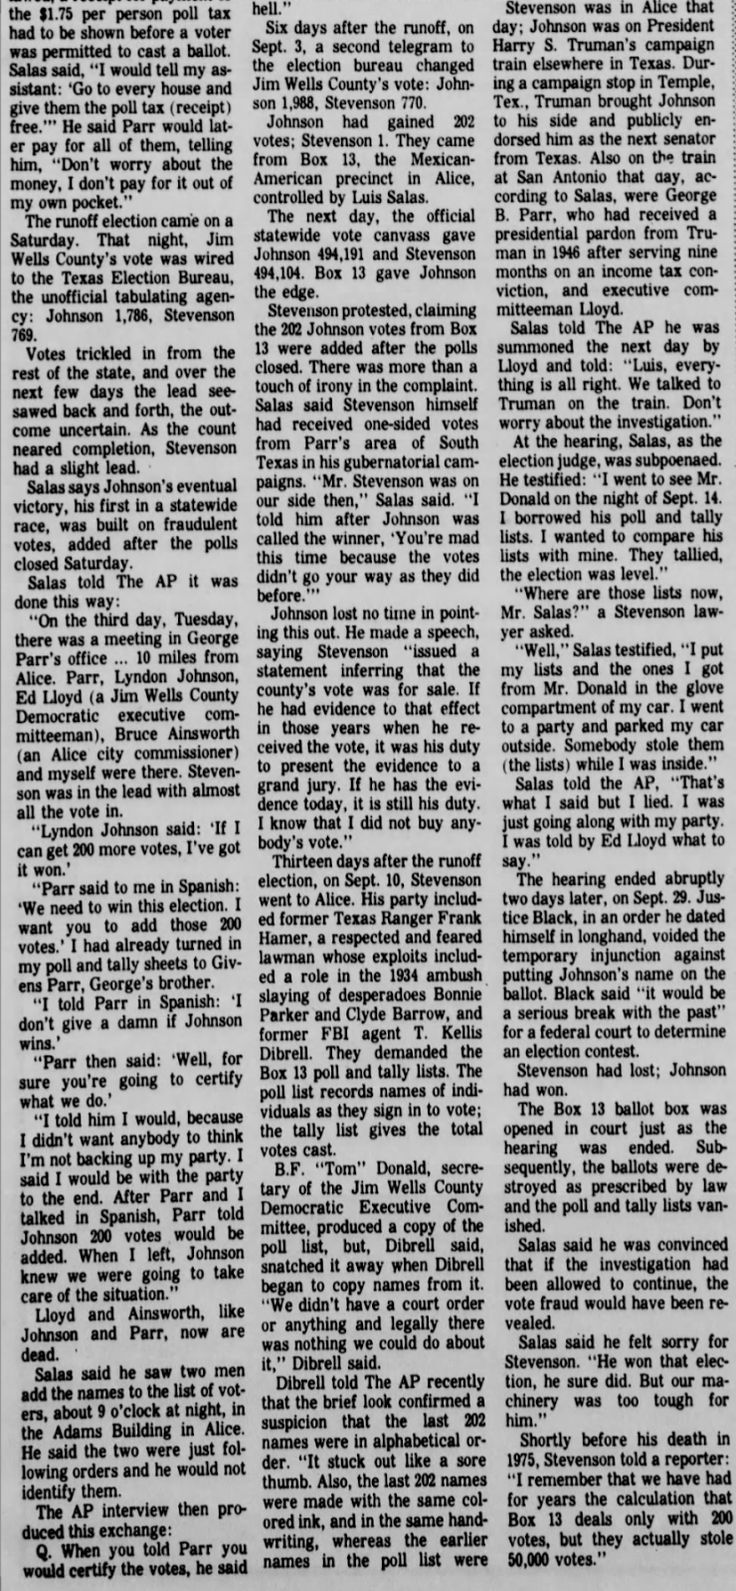 StevenWarRan: July 31, 1977, AP - Corsicana Daily Sun, pages A1, A5, Judge admits Johnson fix; 1948 election fraud confirmed for 'peace of mind',